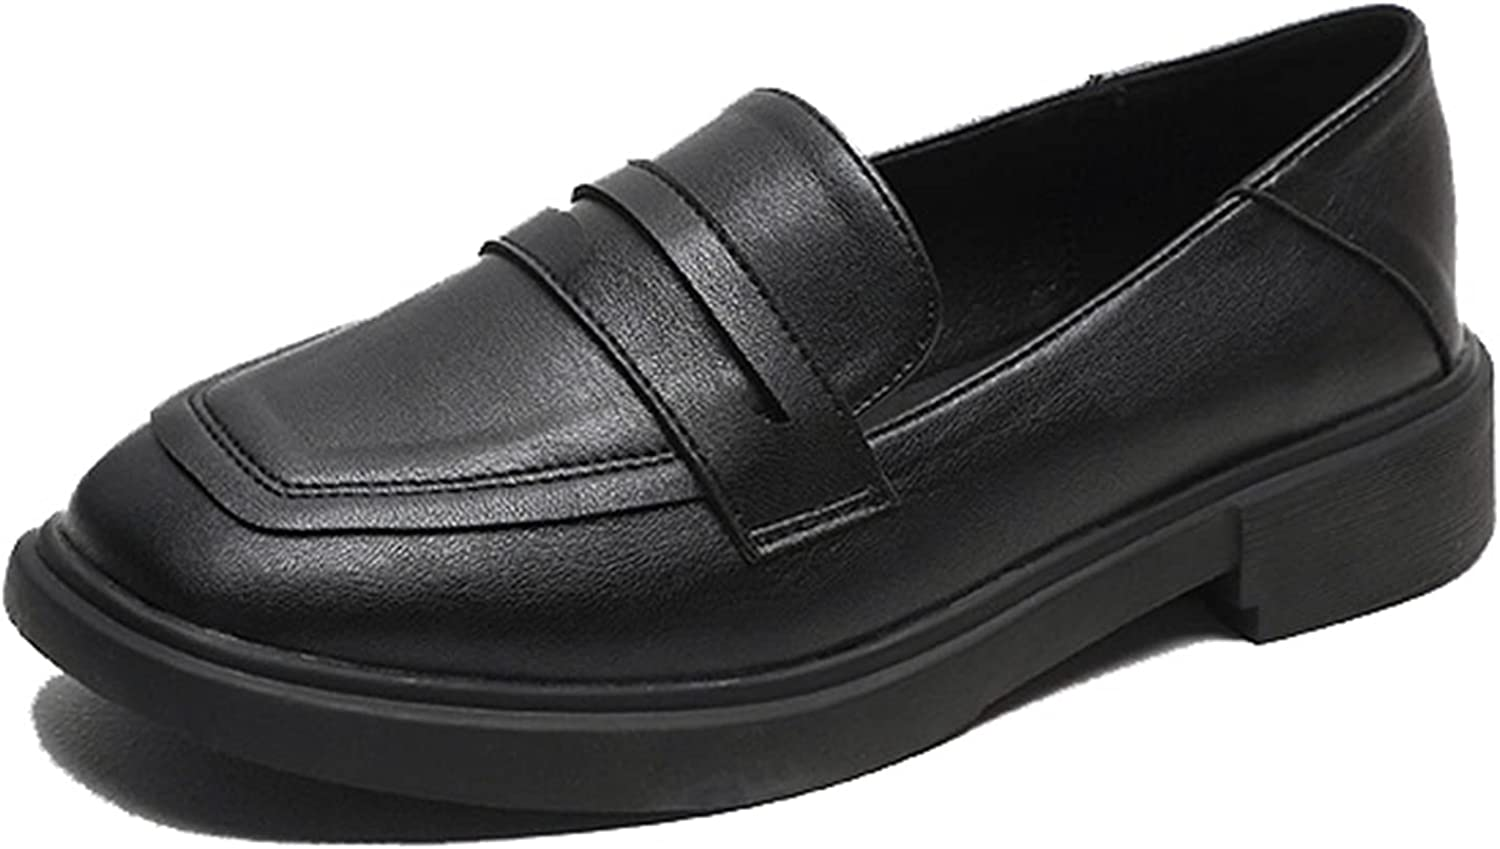 Mail order cheap Womens Mocassin Shoes Slip On Outdoor Daily Walking Louisville-Jefferson County Mall Square